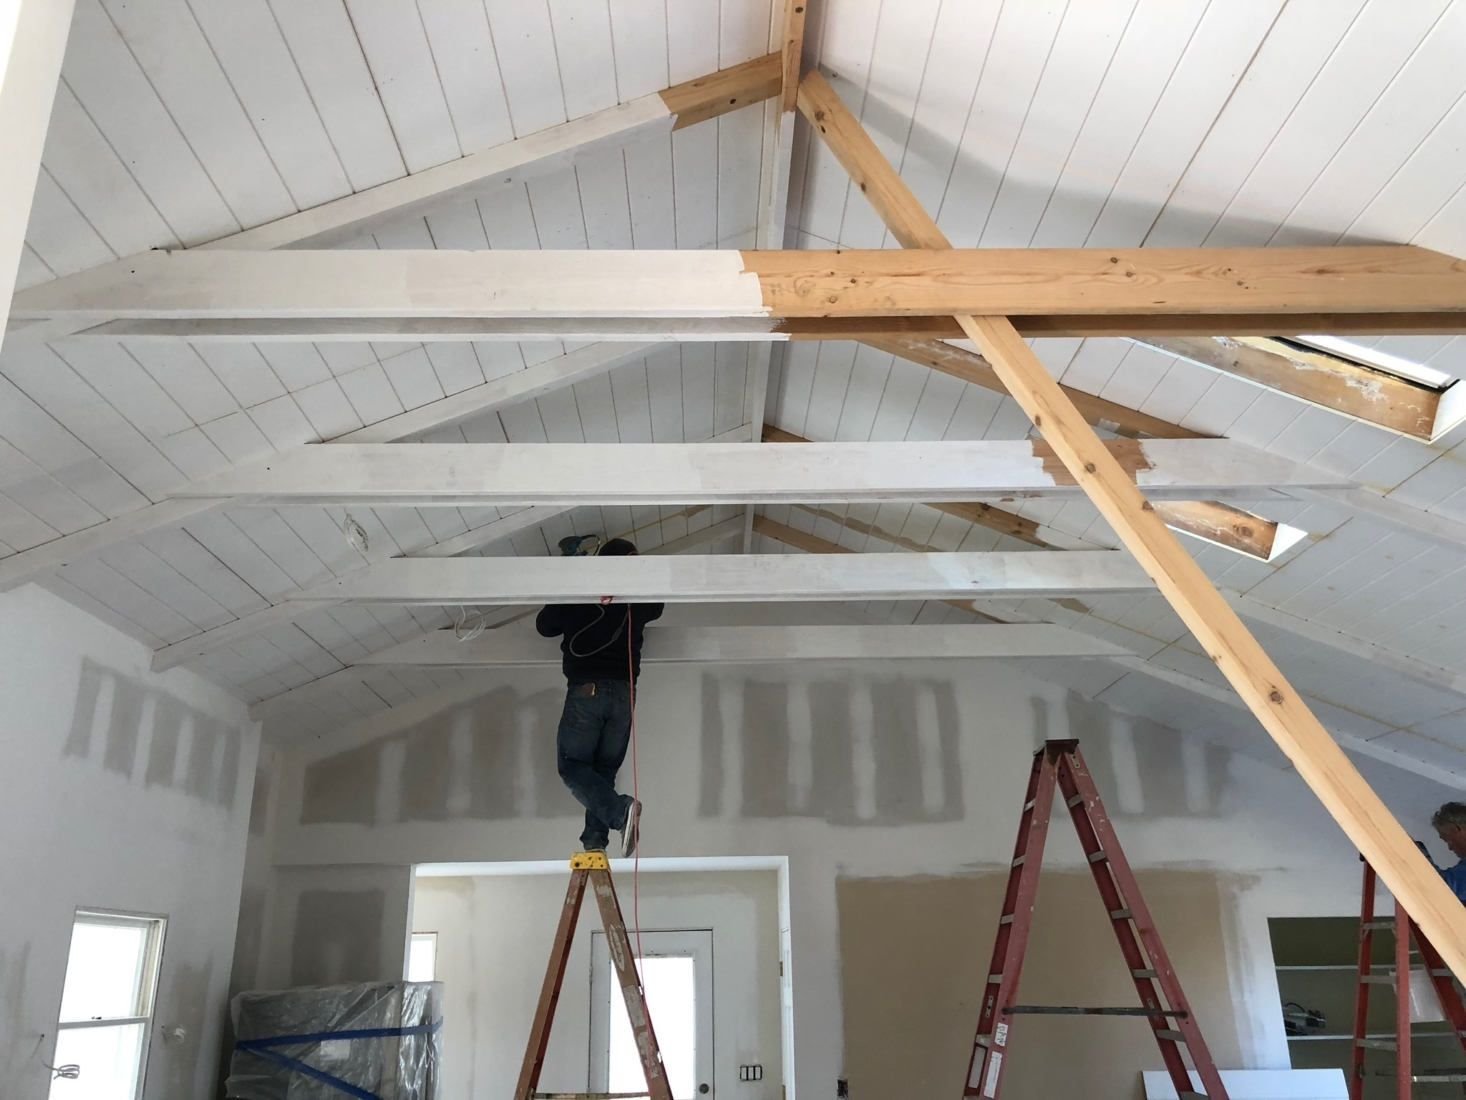 Vintage Summer A Seventies Style Shoppable Airbnb In Montauk Remodelista White Beams Ceiling Vaulted Ceiling Beams Exposed Ceilings